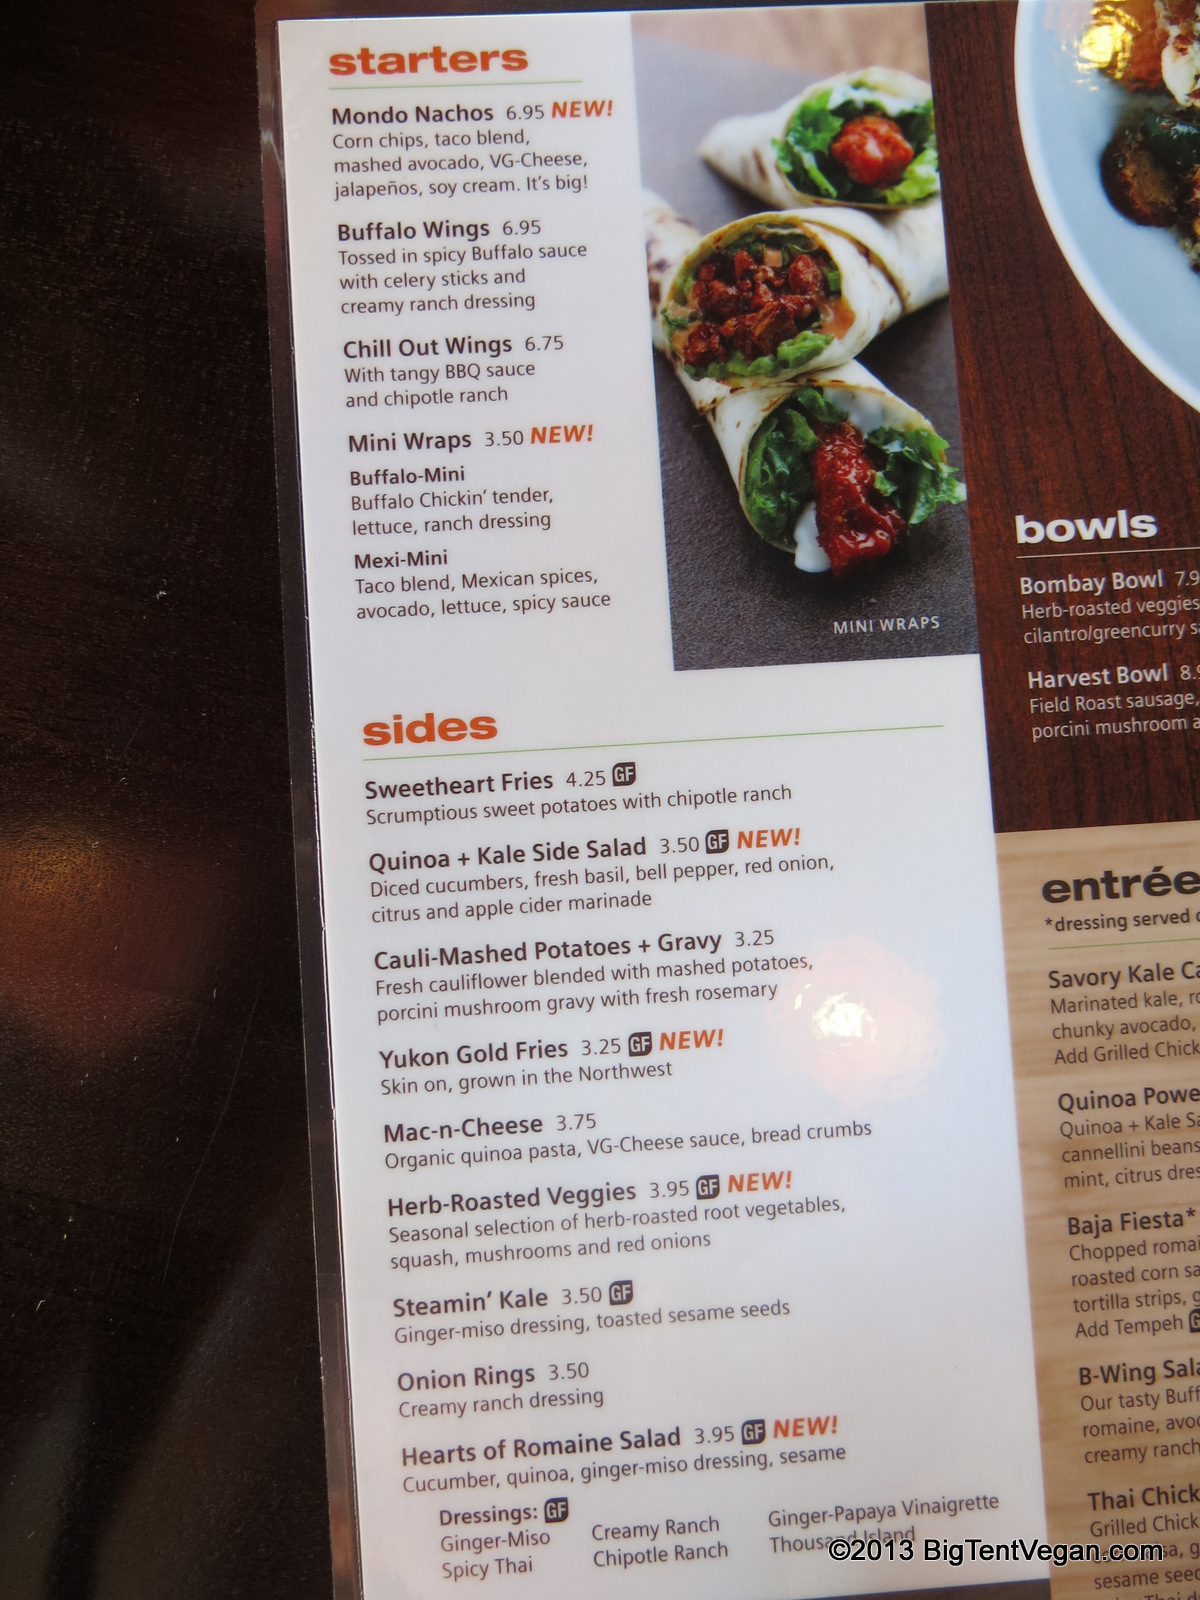 A portion of Veggie Grill's menu showing their new appetizers and sides (they also have several new entrées).